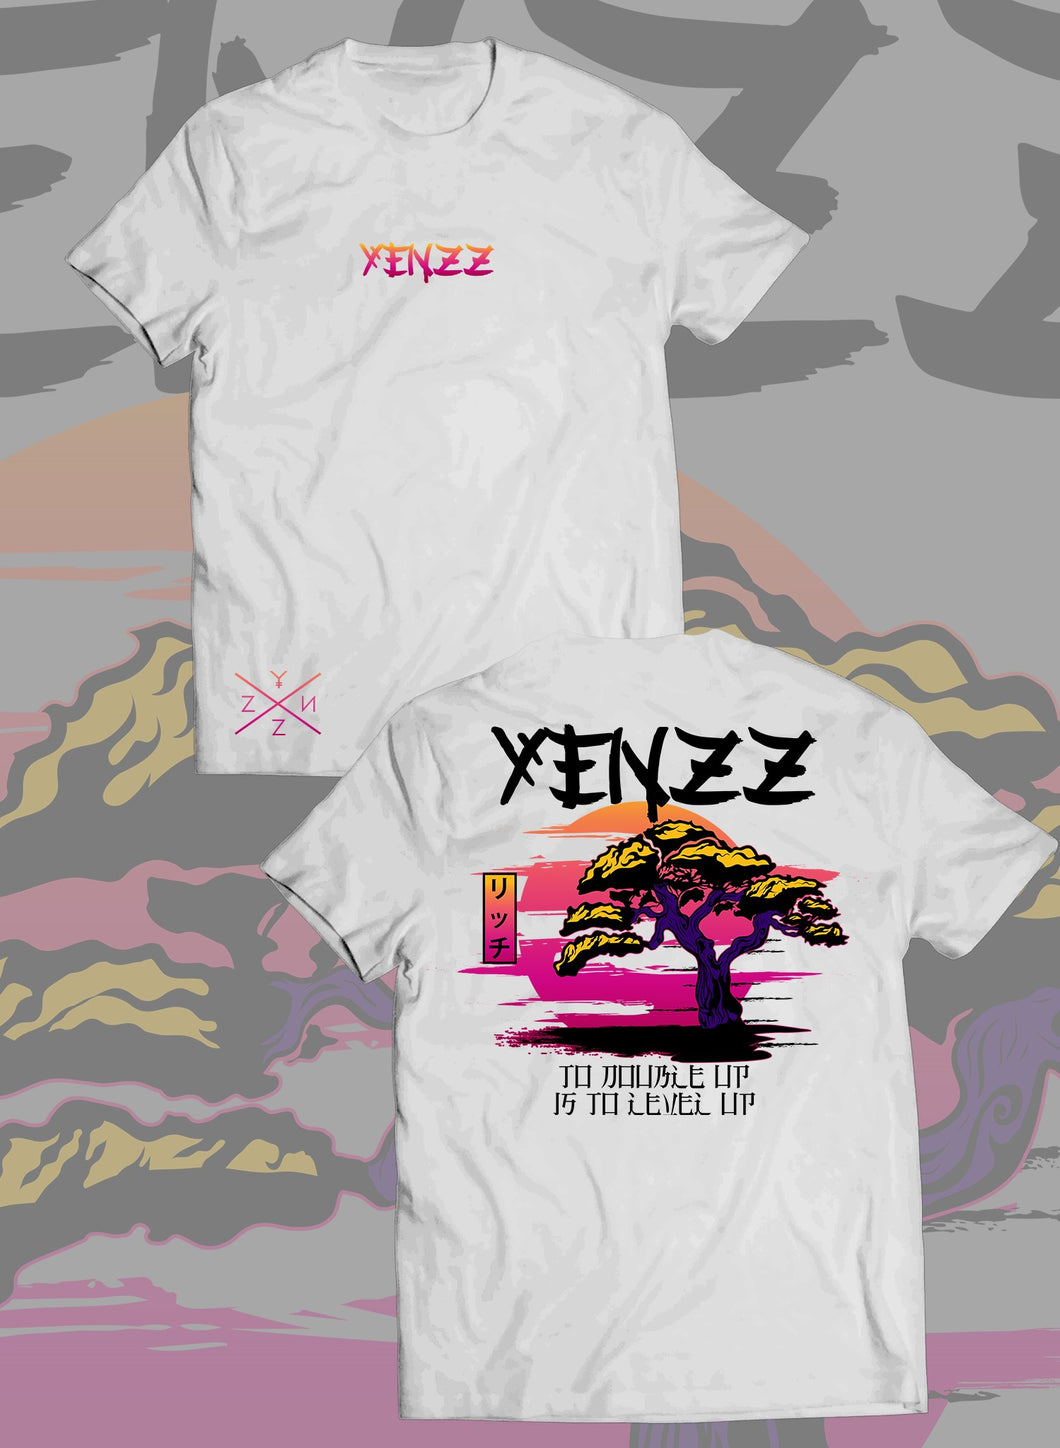 SUNSET YENZZ T-SHIRT